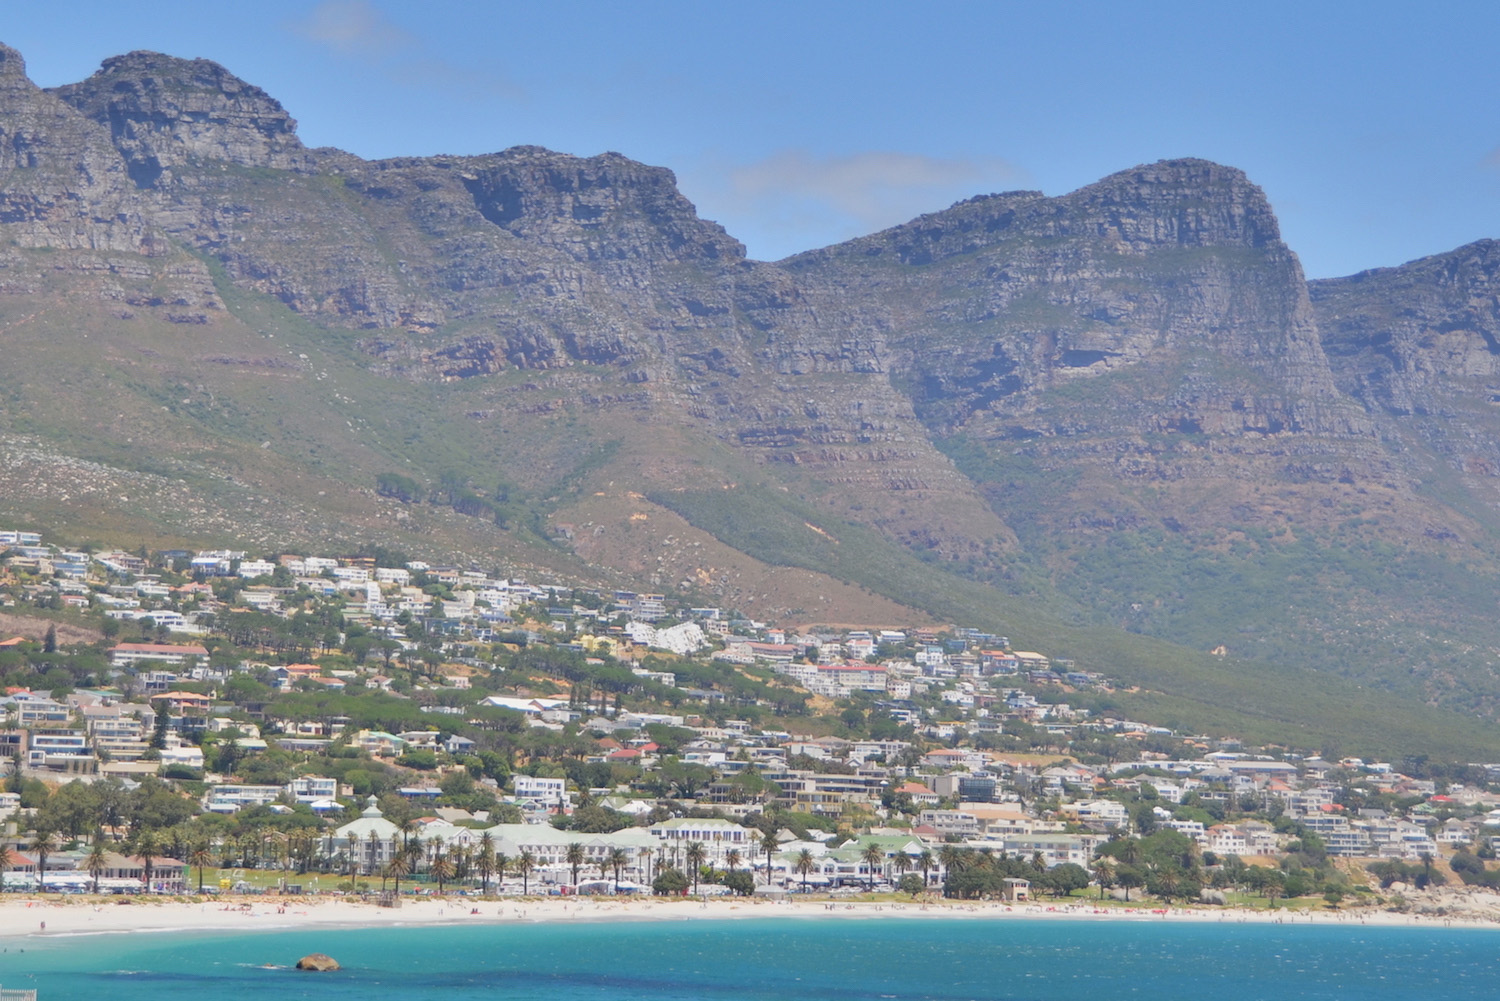 South africa travel guide to cape town cape town travel for Cape town travel guide